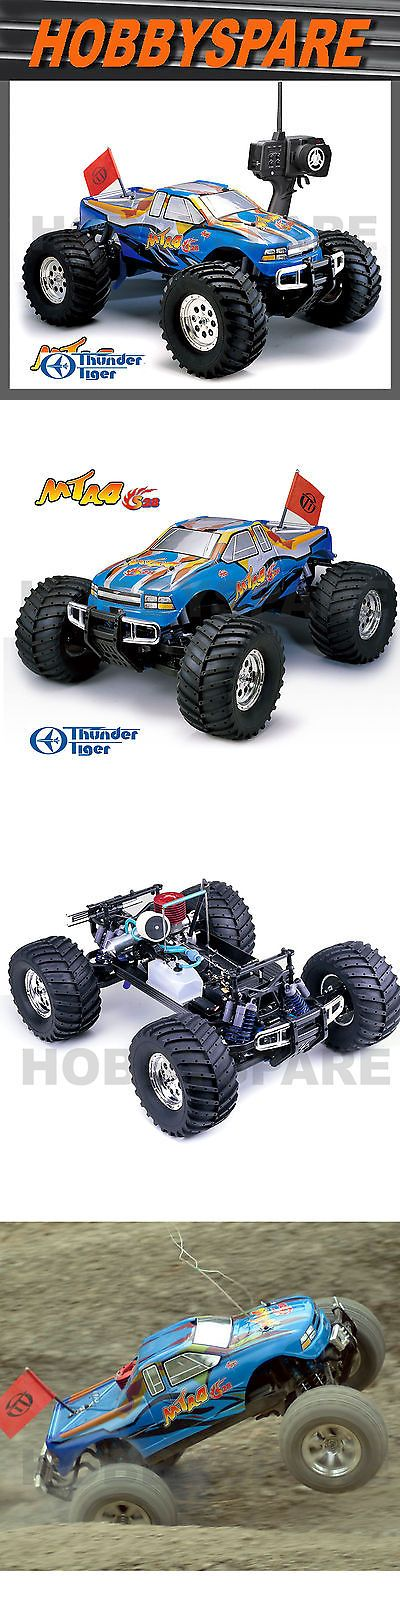 Industrial and Service Vehicles 182184: New Thunder Tiger 1 8 Mta S28 Nitro 2 Speed 4Wd Monster Rc Truck Rtr Blue -> BUY IT NOW ONLY: $379.99 on eBay!